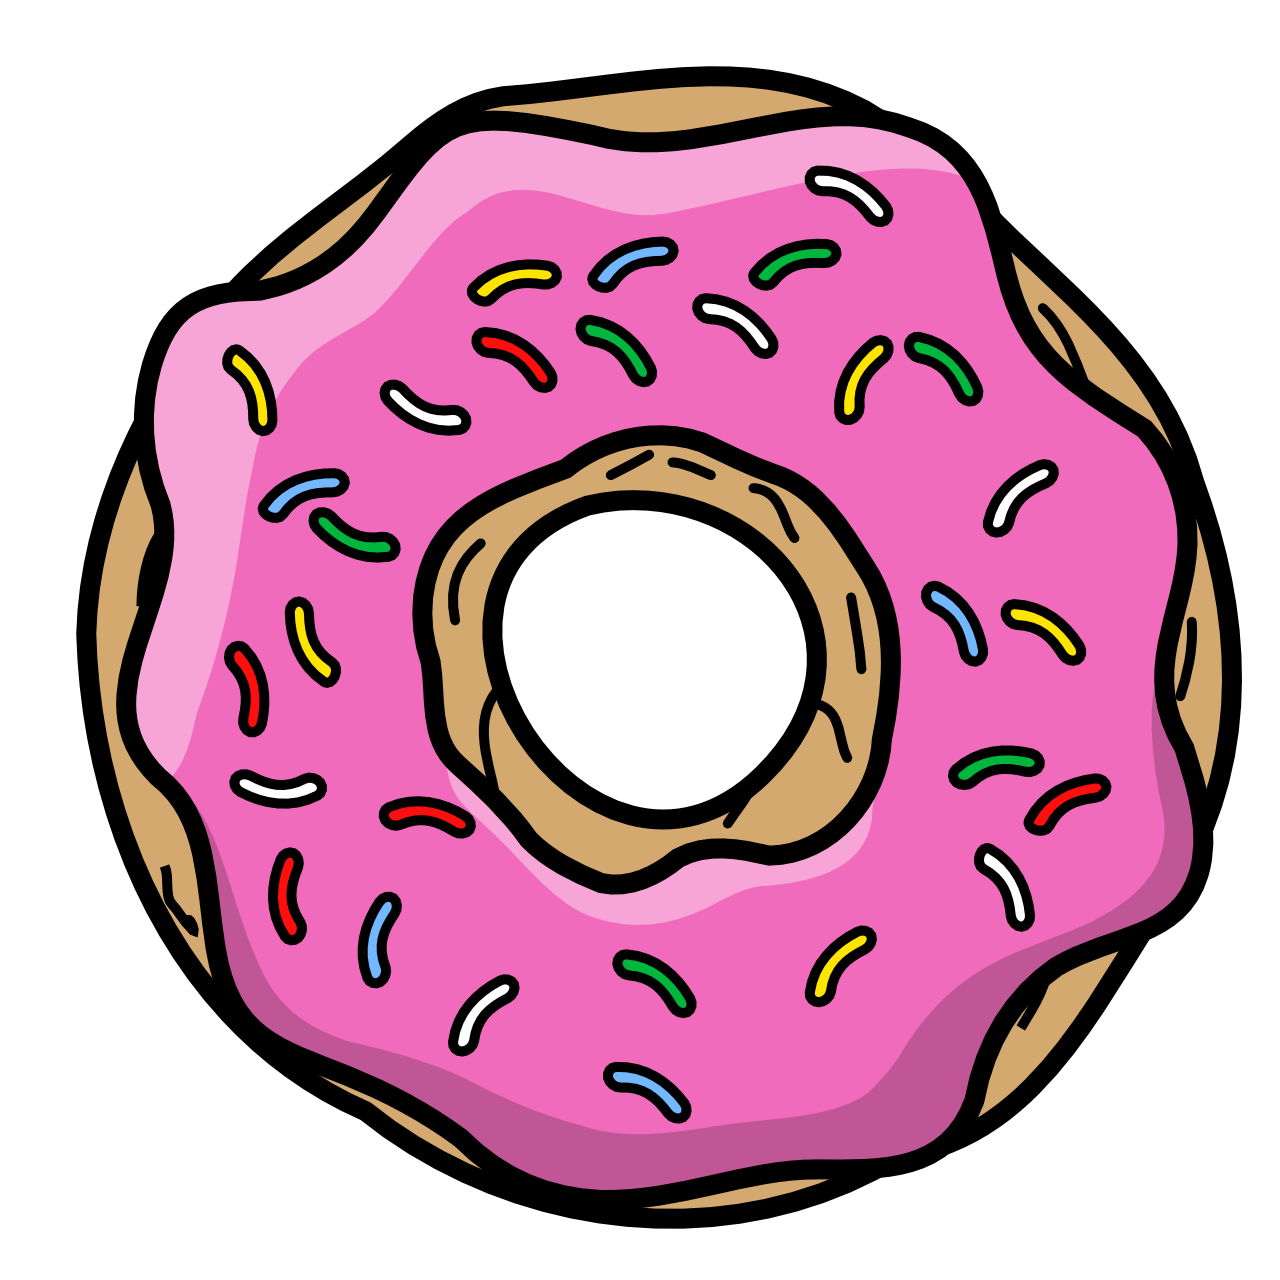 clipart freeuse download Donuts clipart video game. Bite vector donut